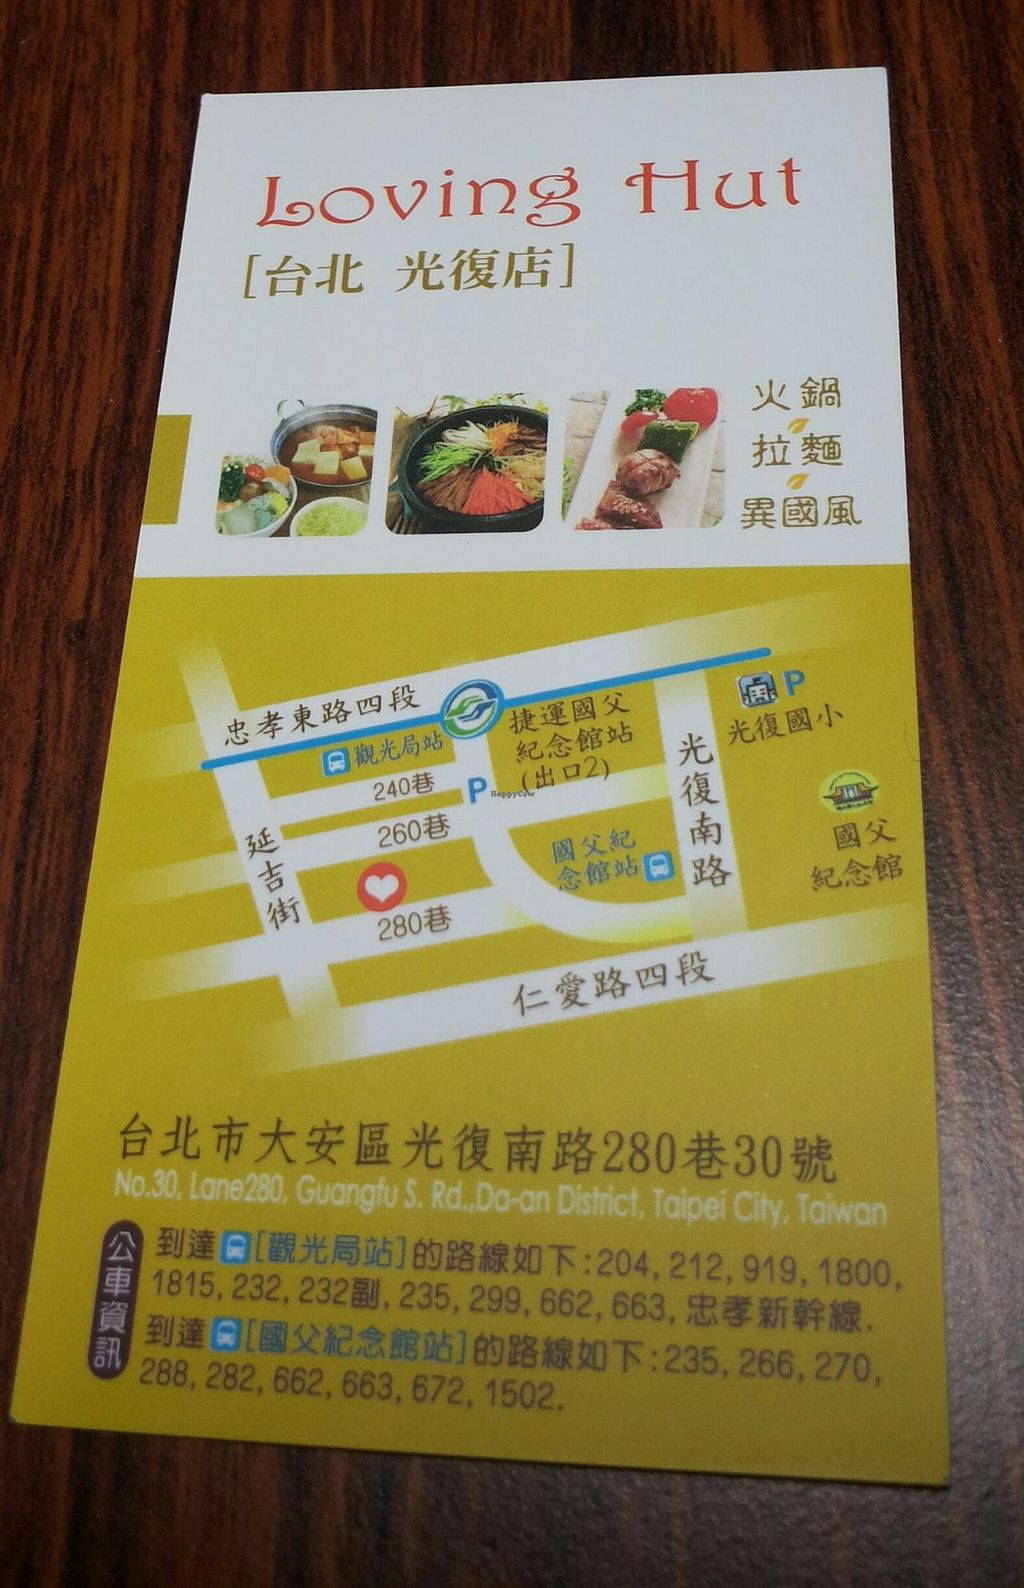 """Photo of Loving Hut - Guangfu South Rd  by <a href=""""/members/profile/peas-full"""">peas-full</a> <br/>map <br/> December 9, 2014  - <a href='/contact/abuse/image/17062/87524'>Report</a>"""